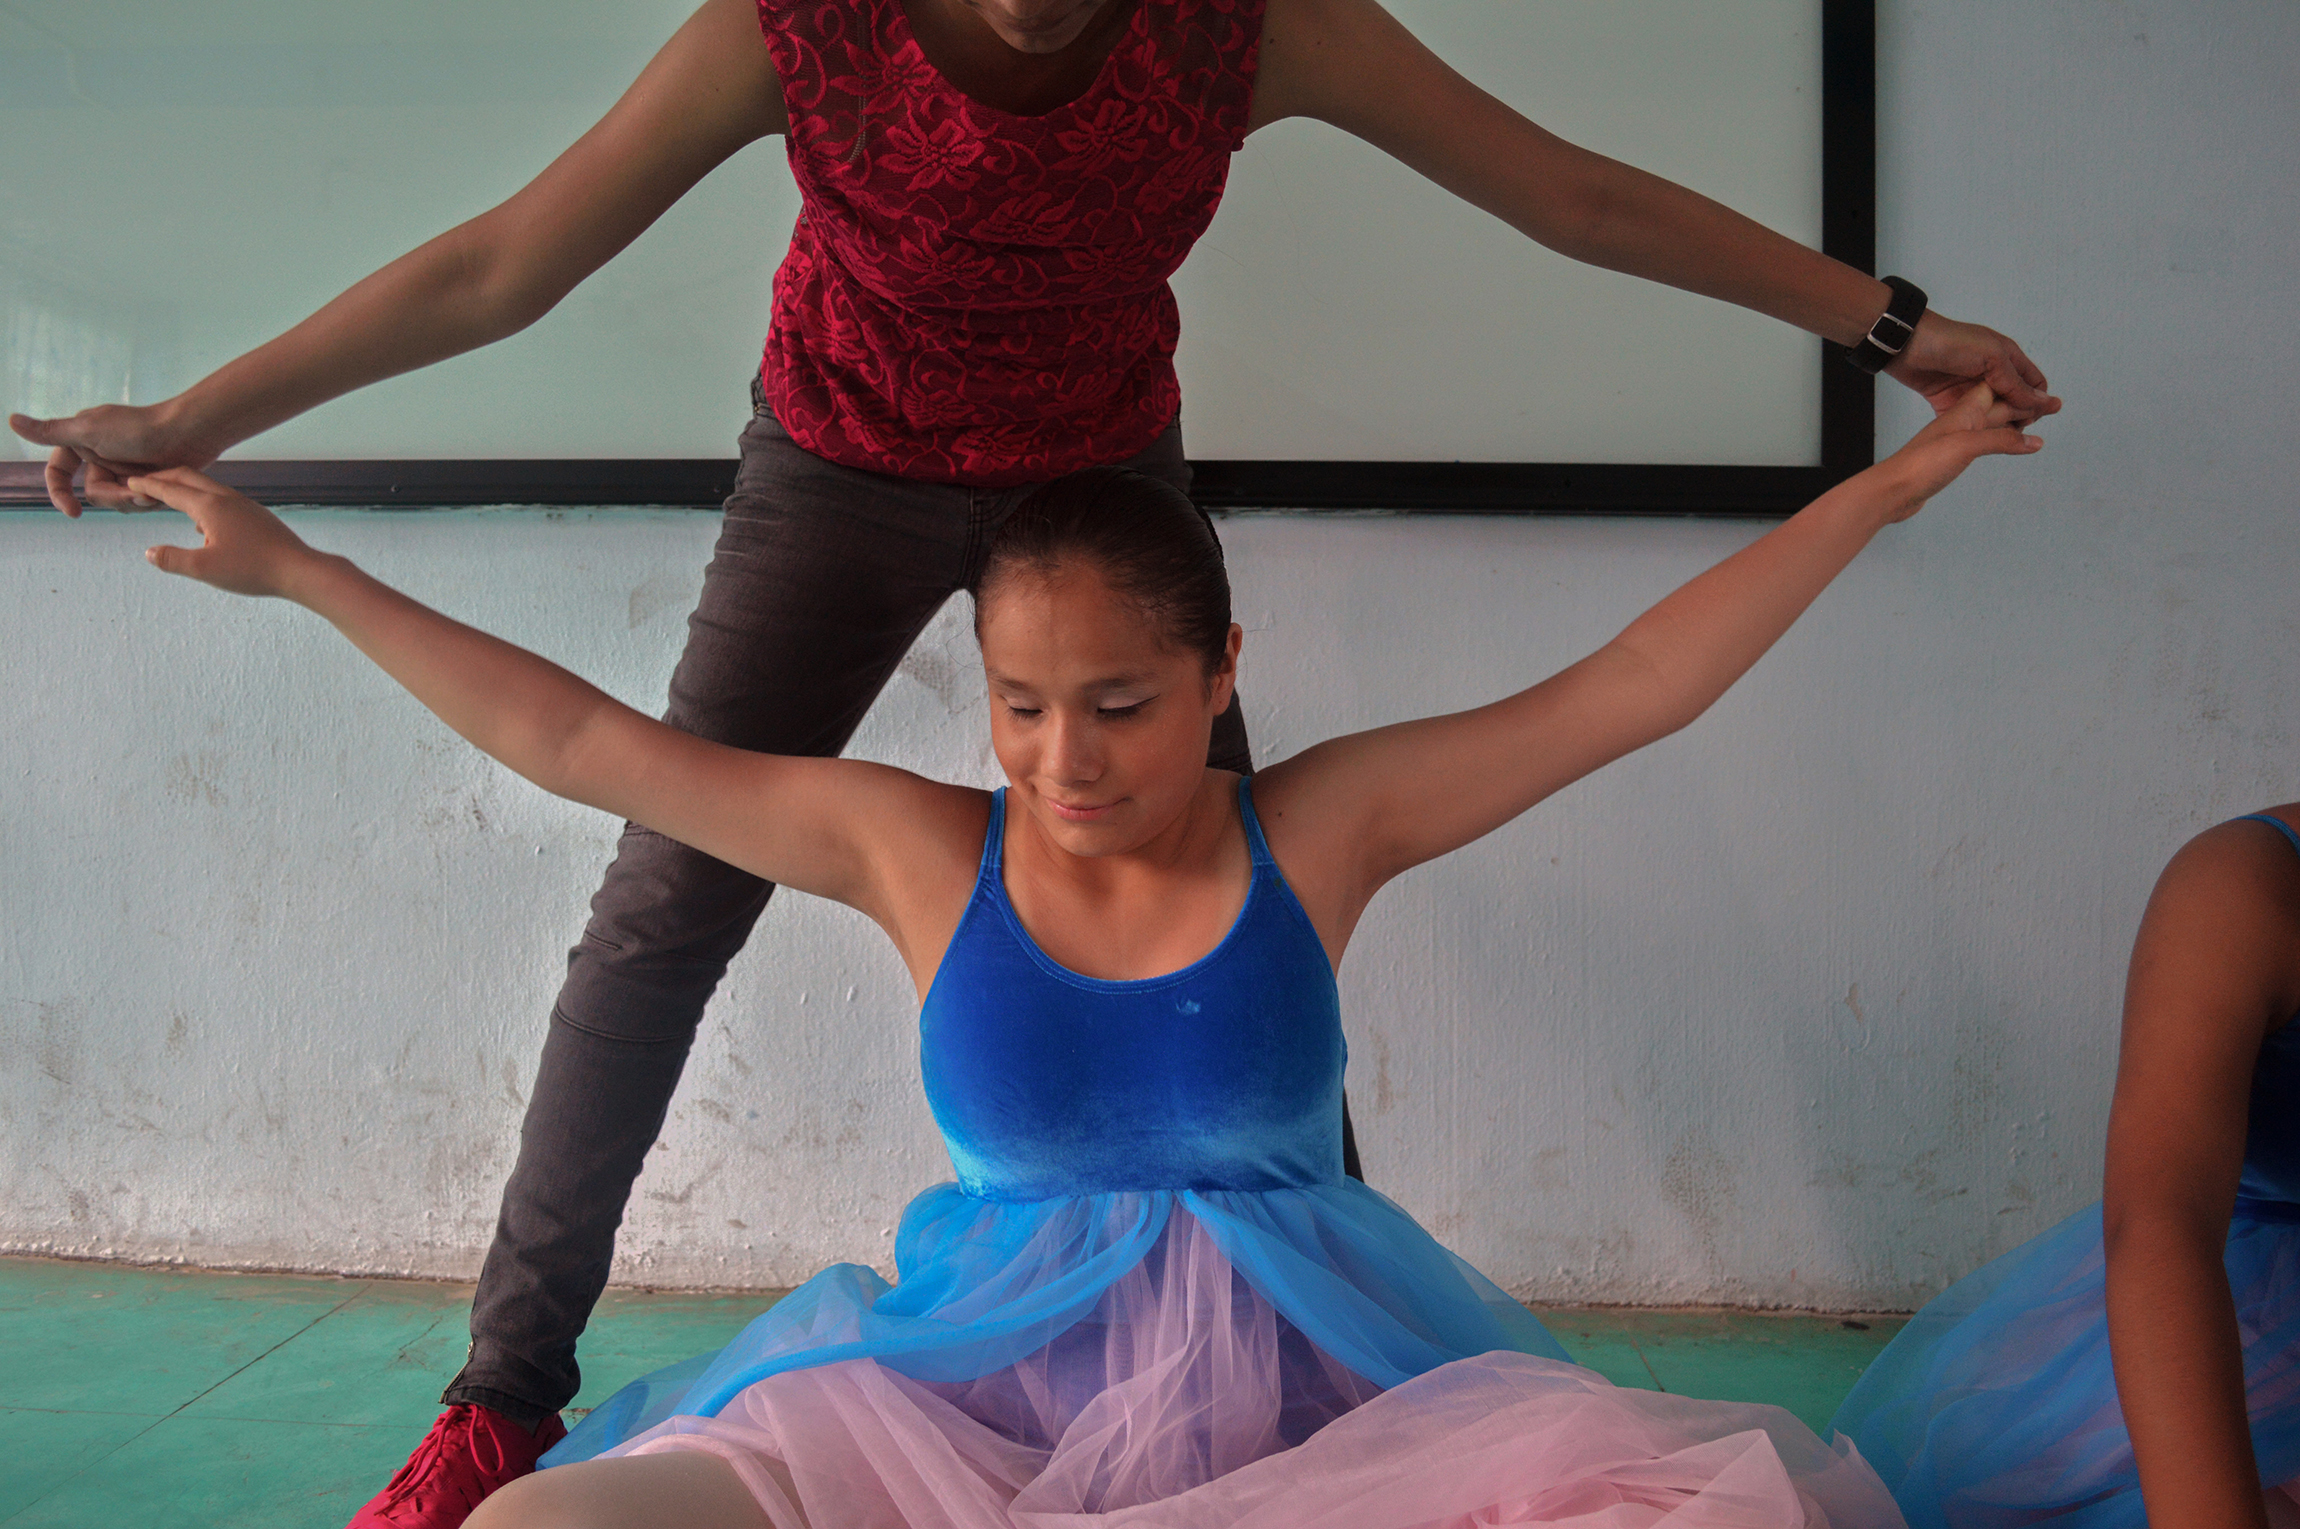 Lorena Nieva guides Pati as she stretches before her performance